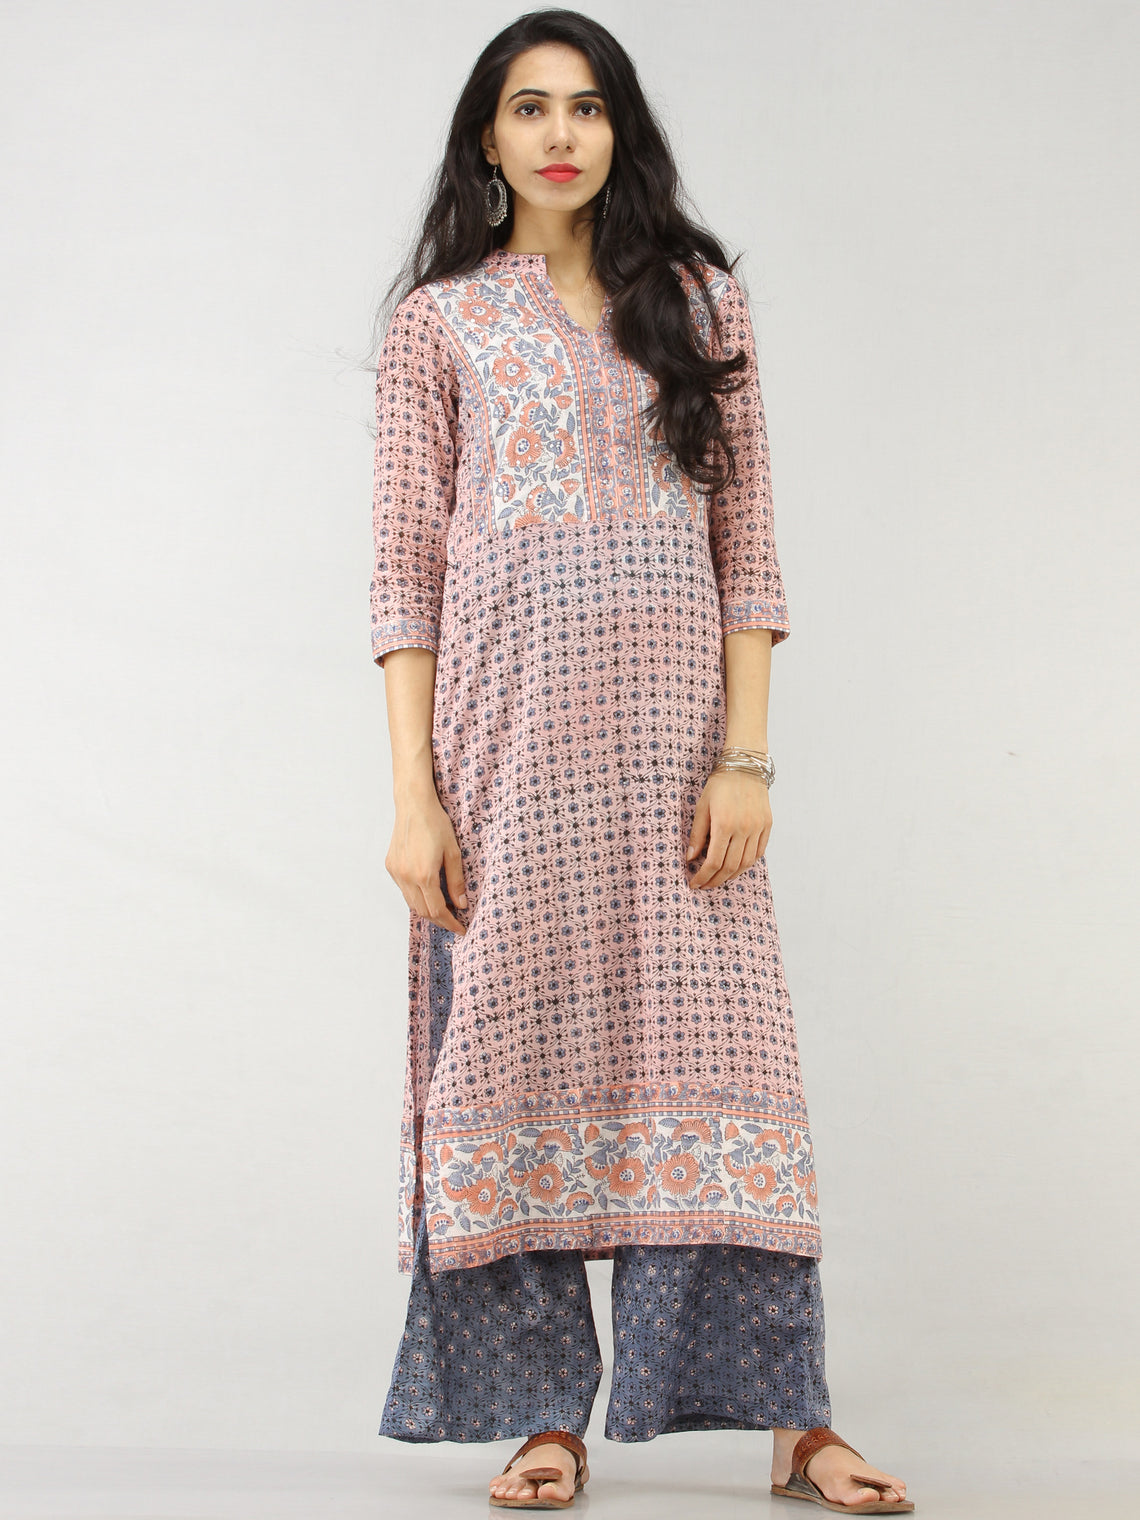 Rangrez Faghir - Set of Straight Kurta Palazzo & Dupatta - KS60A2179D